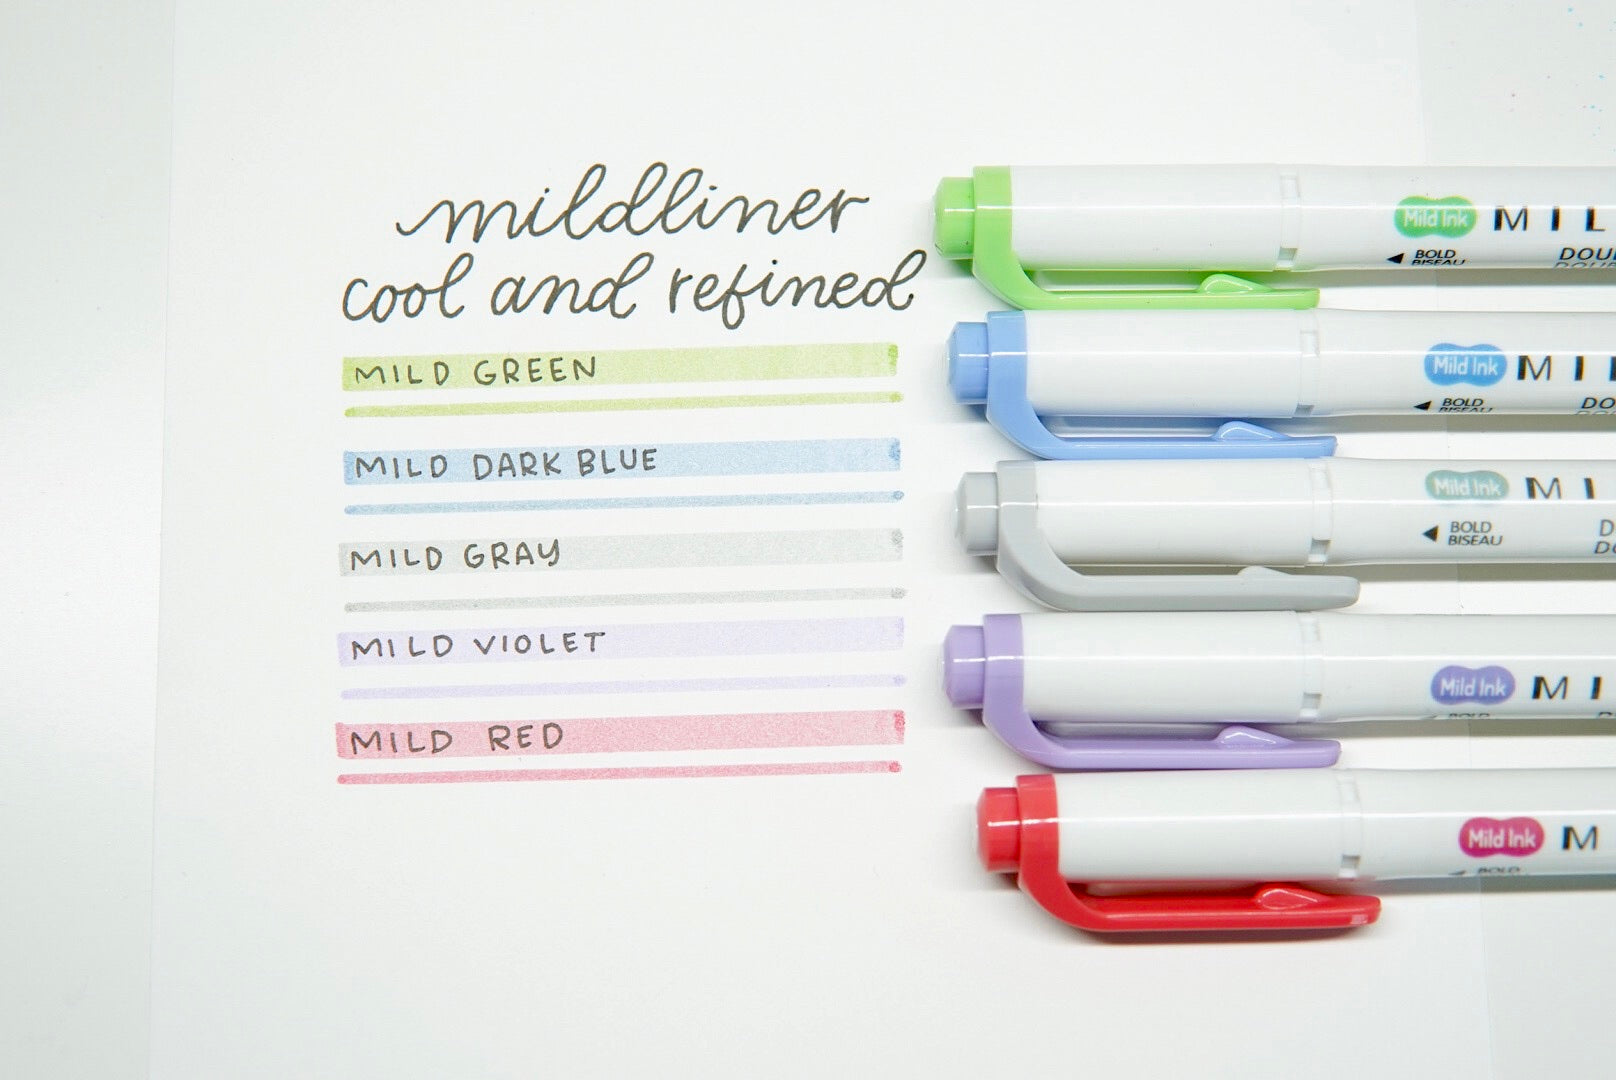 Mildliner Double Ended Highlighter - Cool & Refined